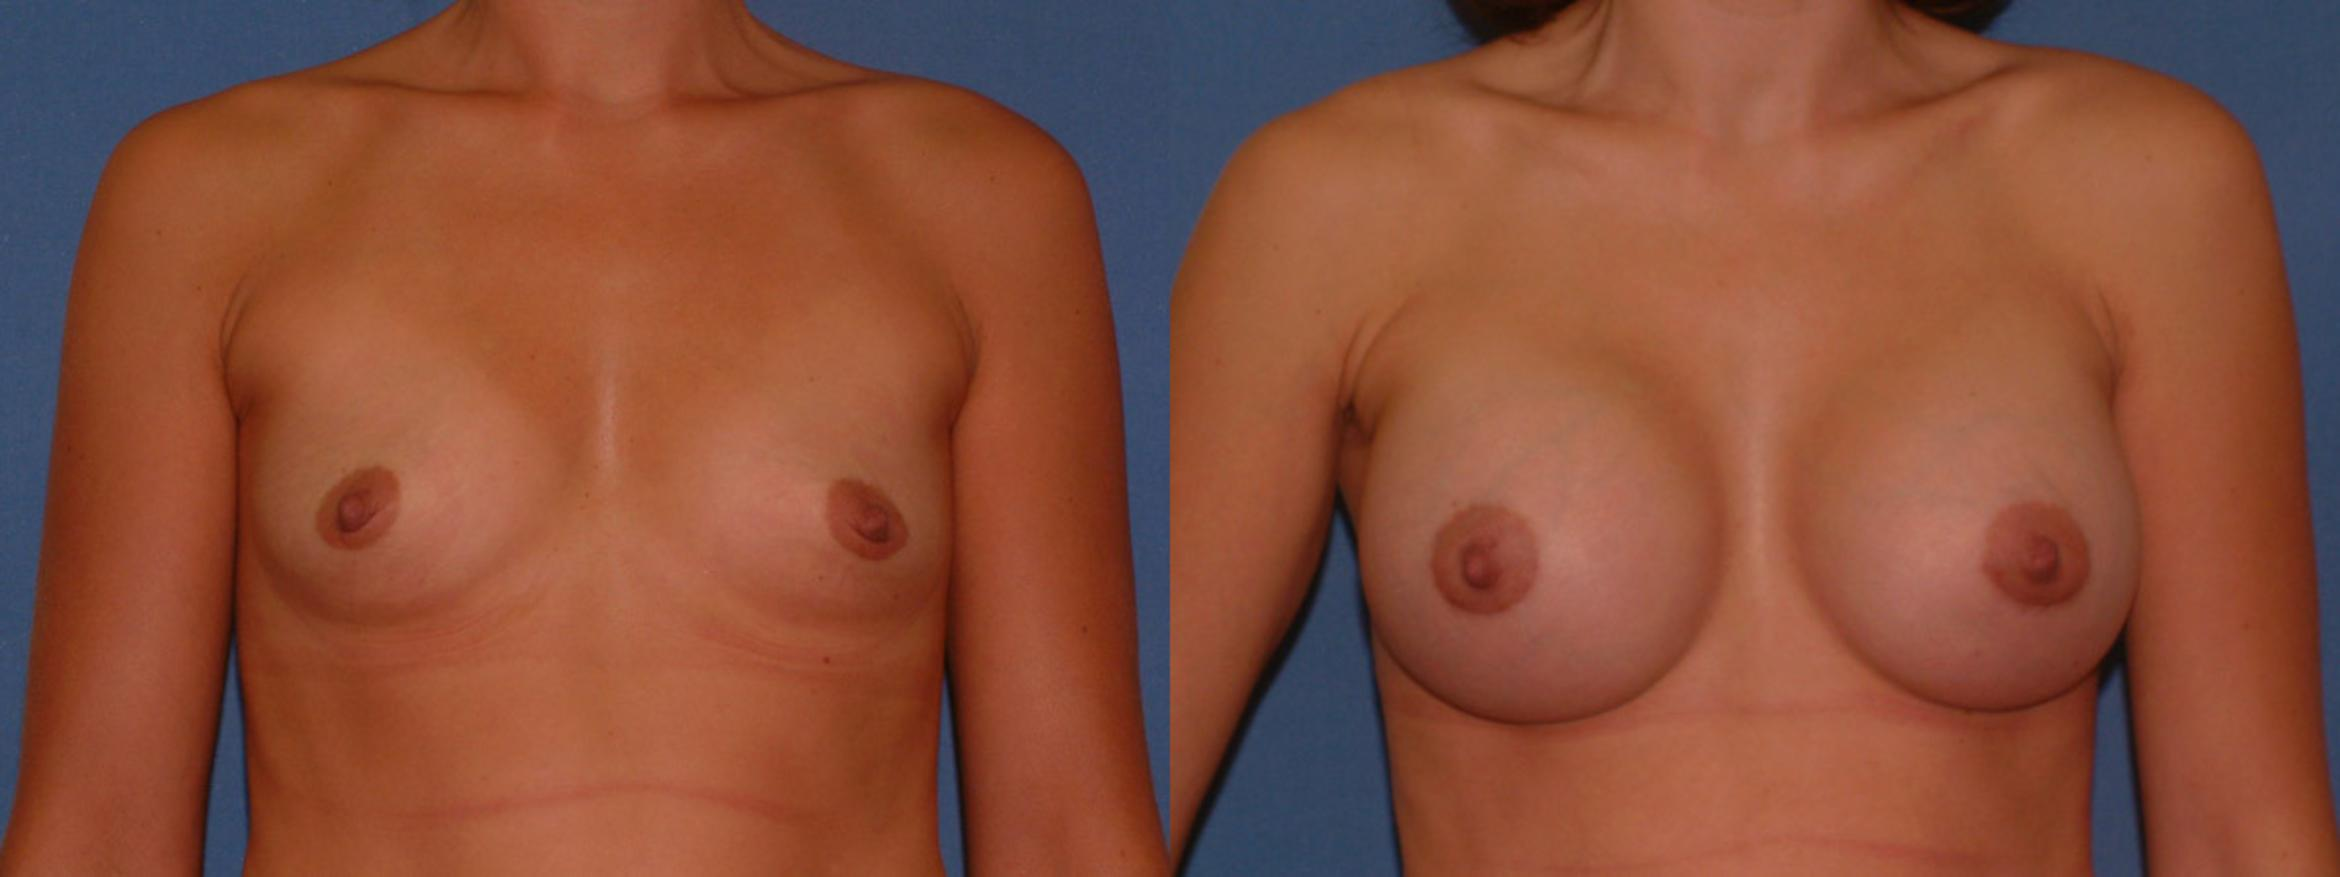 Breast Augmentation Case 5 Before & After View #1 | Downers Grove, IL | Dr. Sandeep Jejurikar